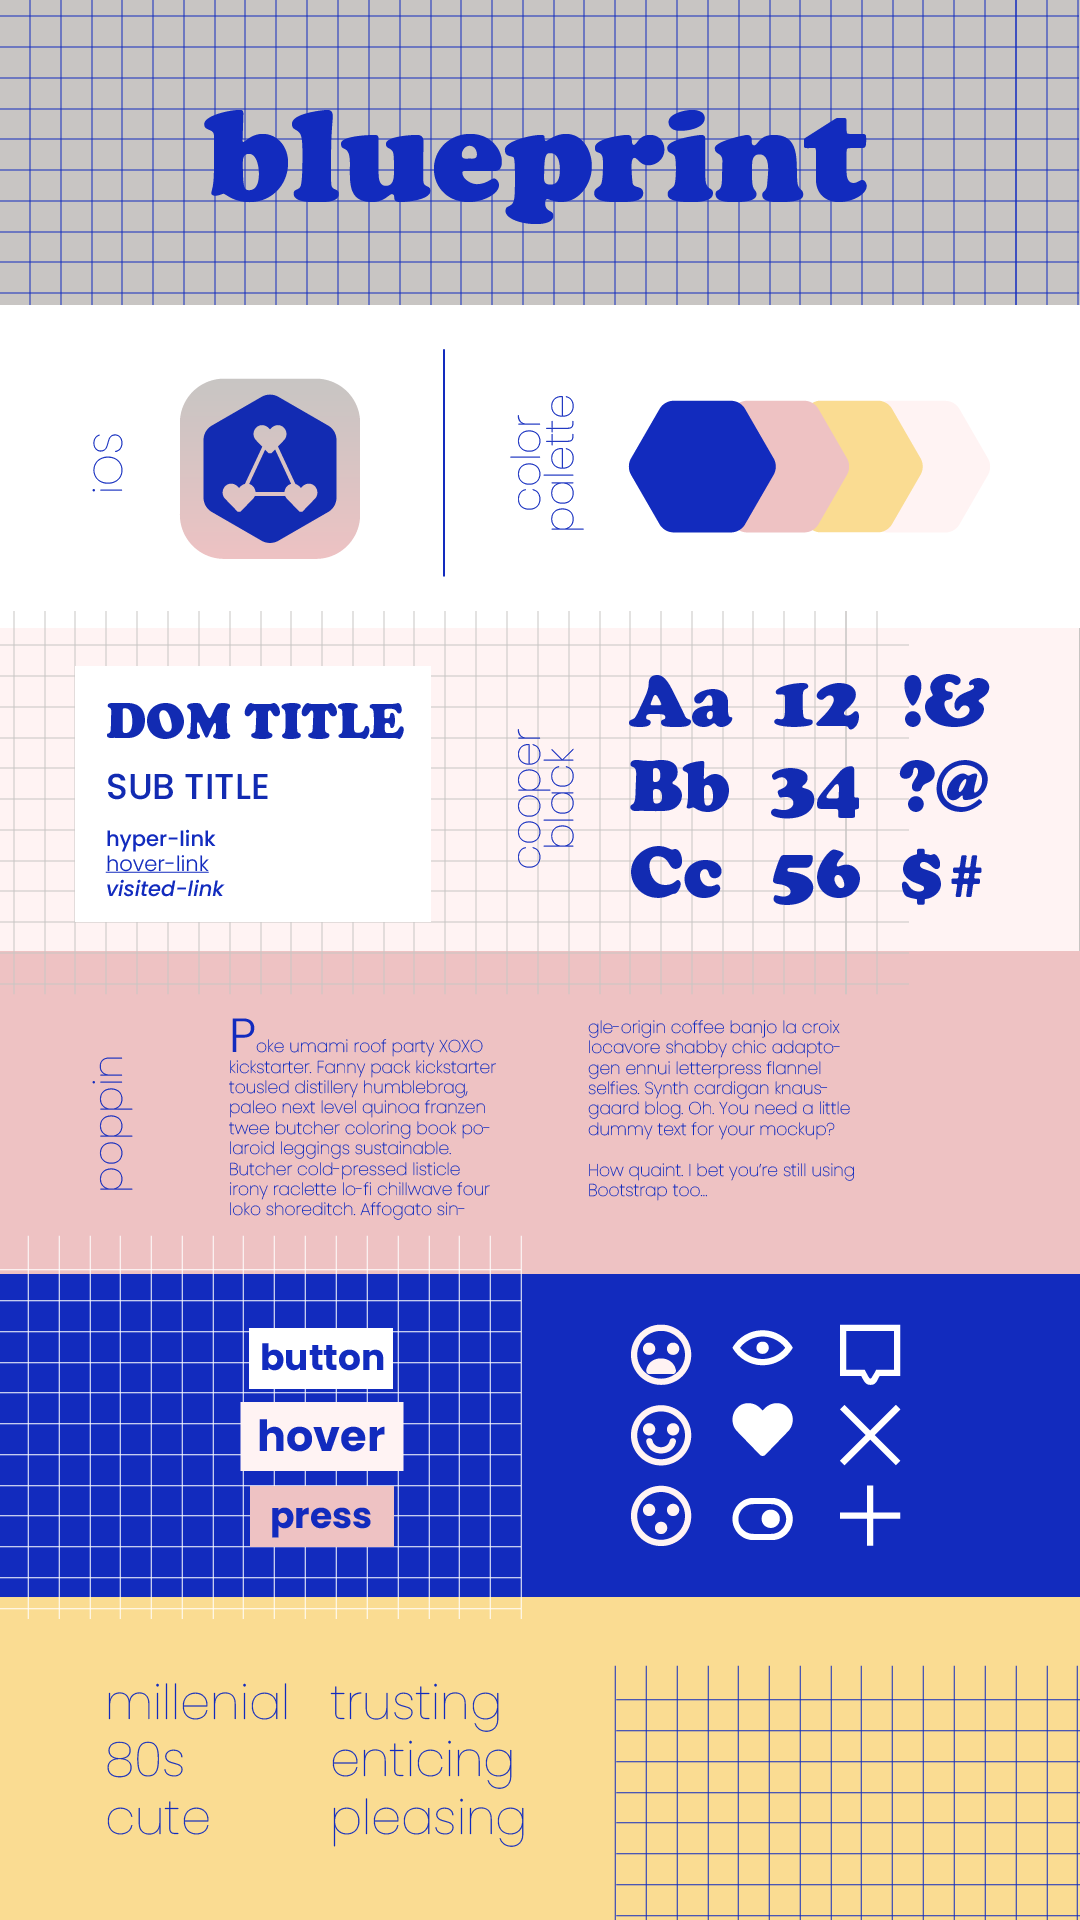 Style tile for a social media/dating app and website called Blueprint geared towards millennials.